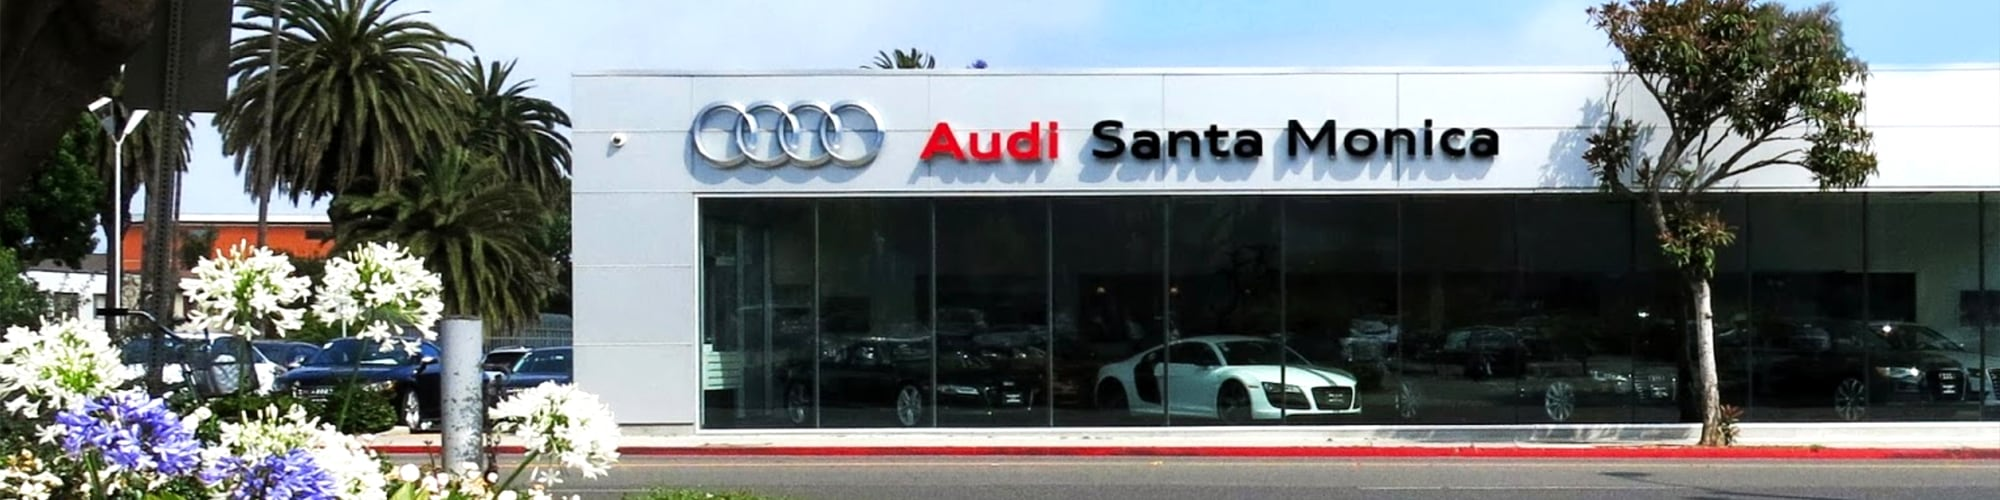 Santa Monica Audi new and used car dealership